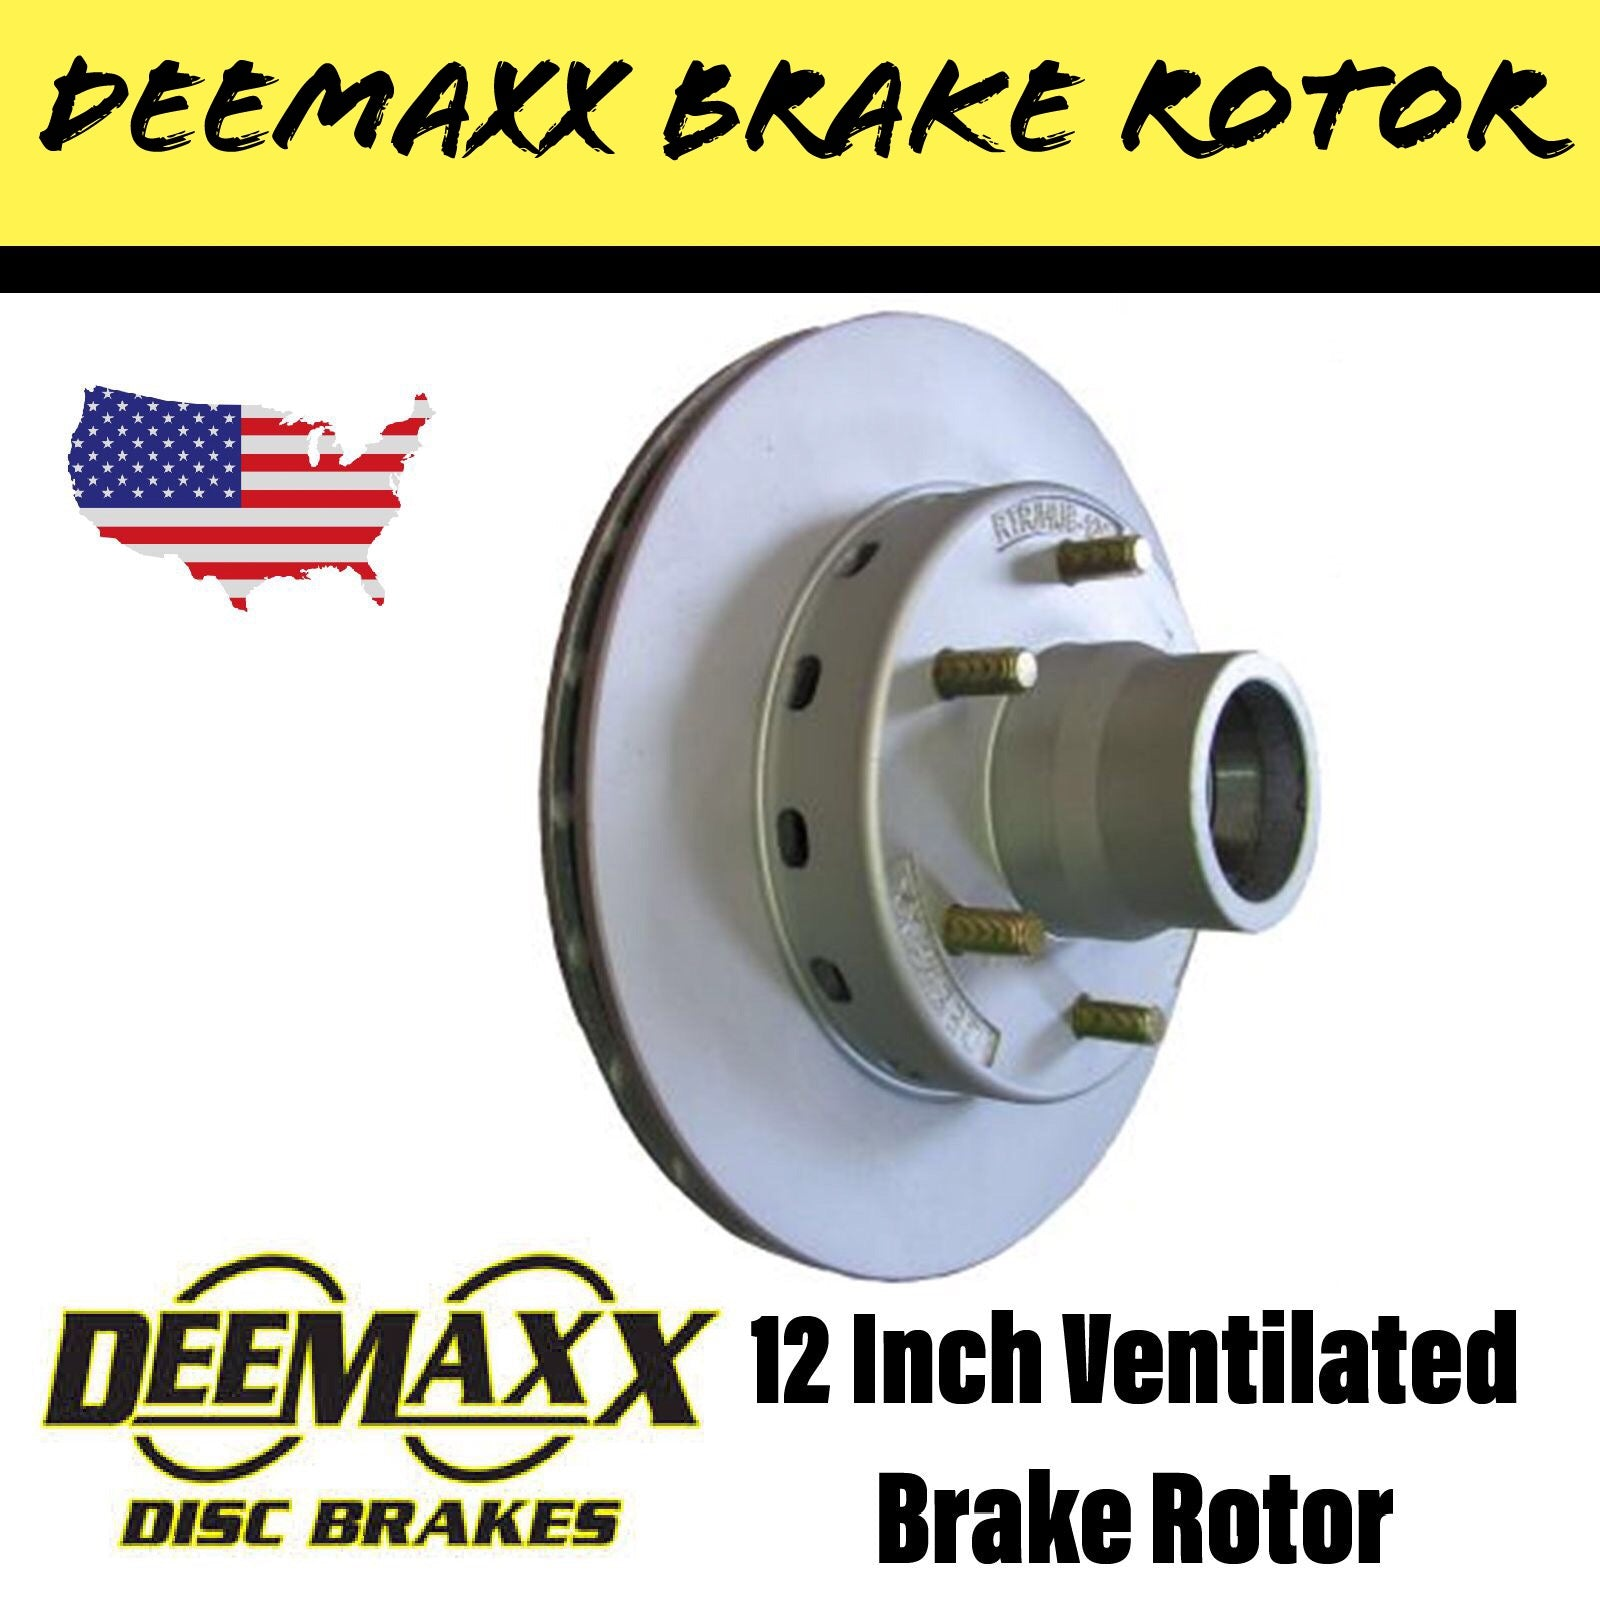 DEEMAXX 12 INCH INTEGRAL Brake Rotor